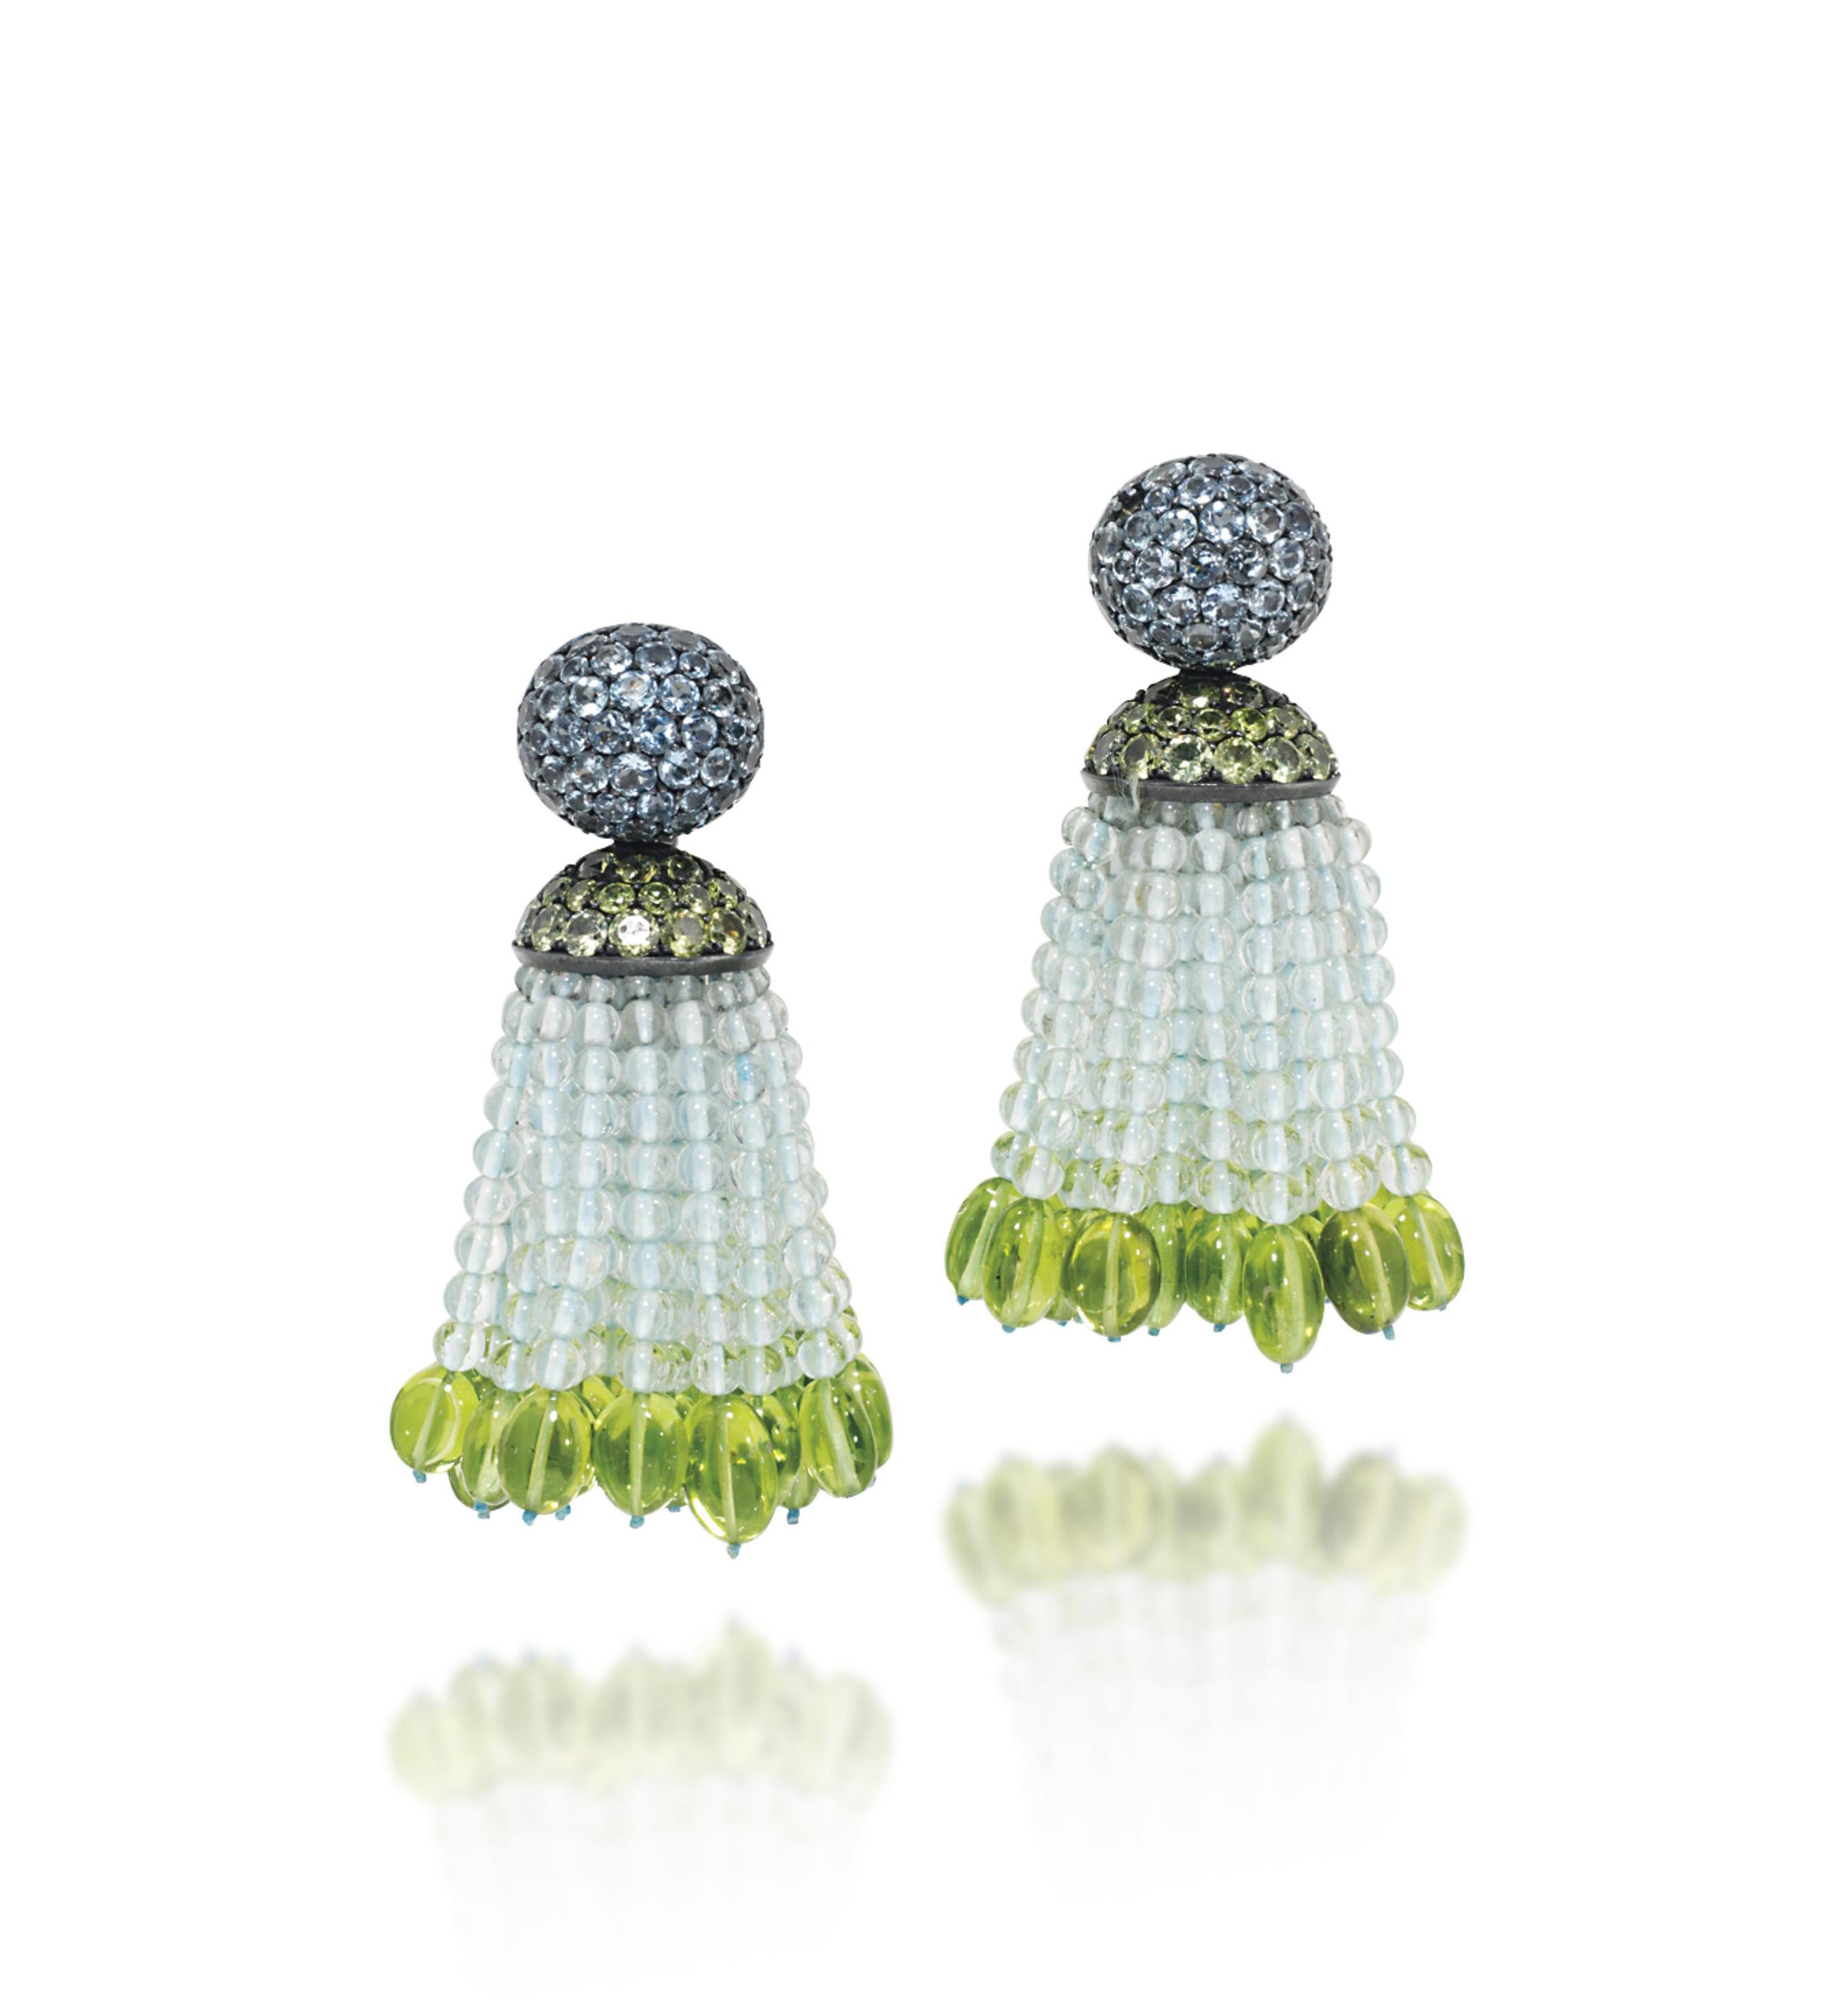 A PAIR OF AQUAMARINE AND PERIDOT TASSEL EAR PENDANTS, BY HEMMERLE